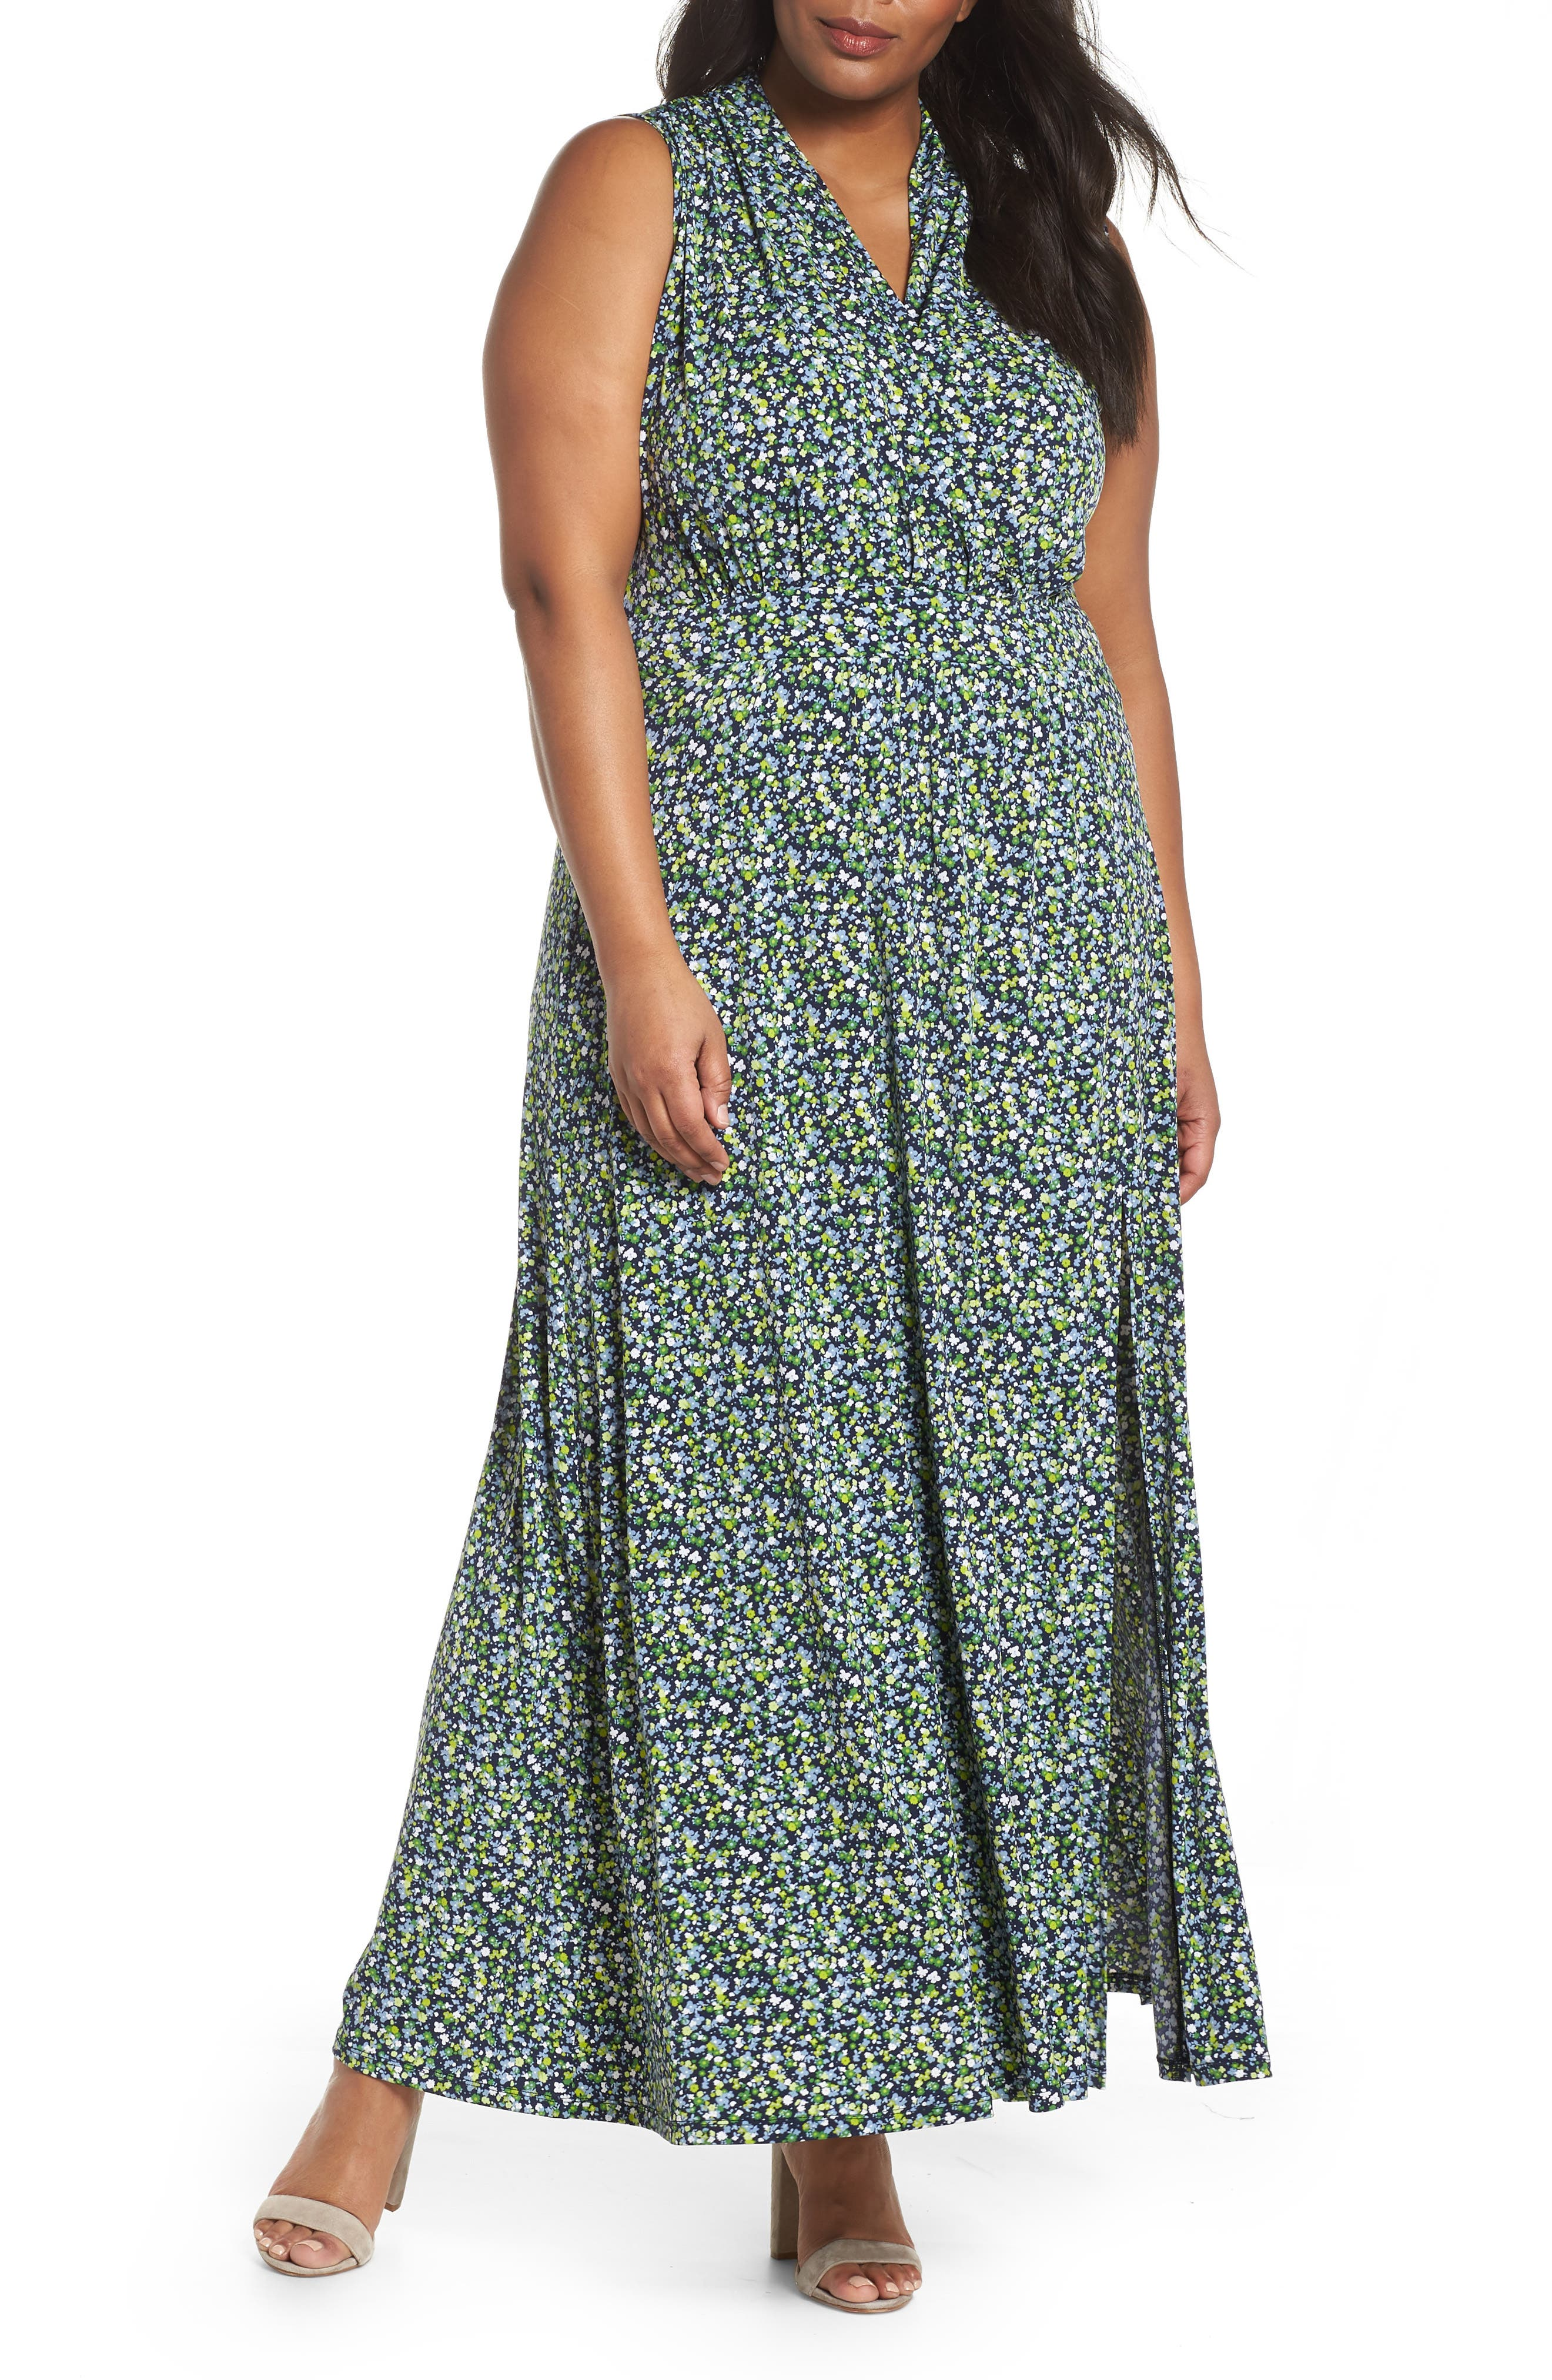 Alternate Image 1 Selected - MICHAEL Michael Kors Wildflowers Maxi Dress (Plus Size)